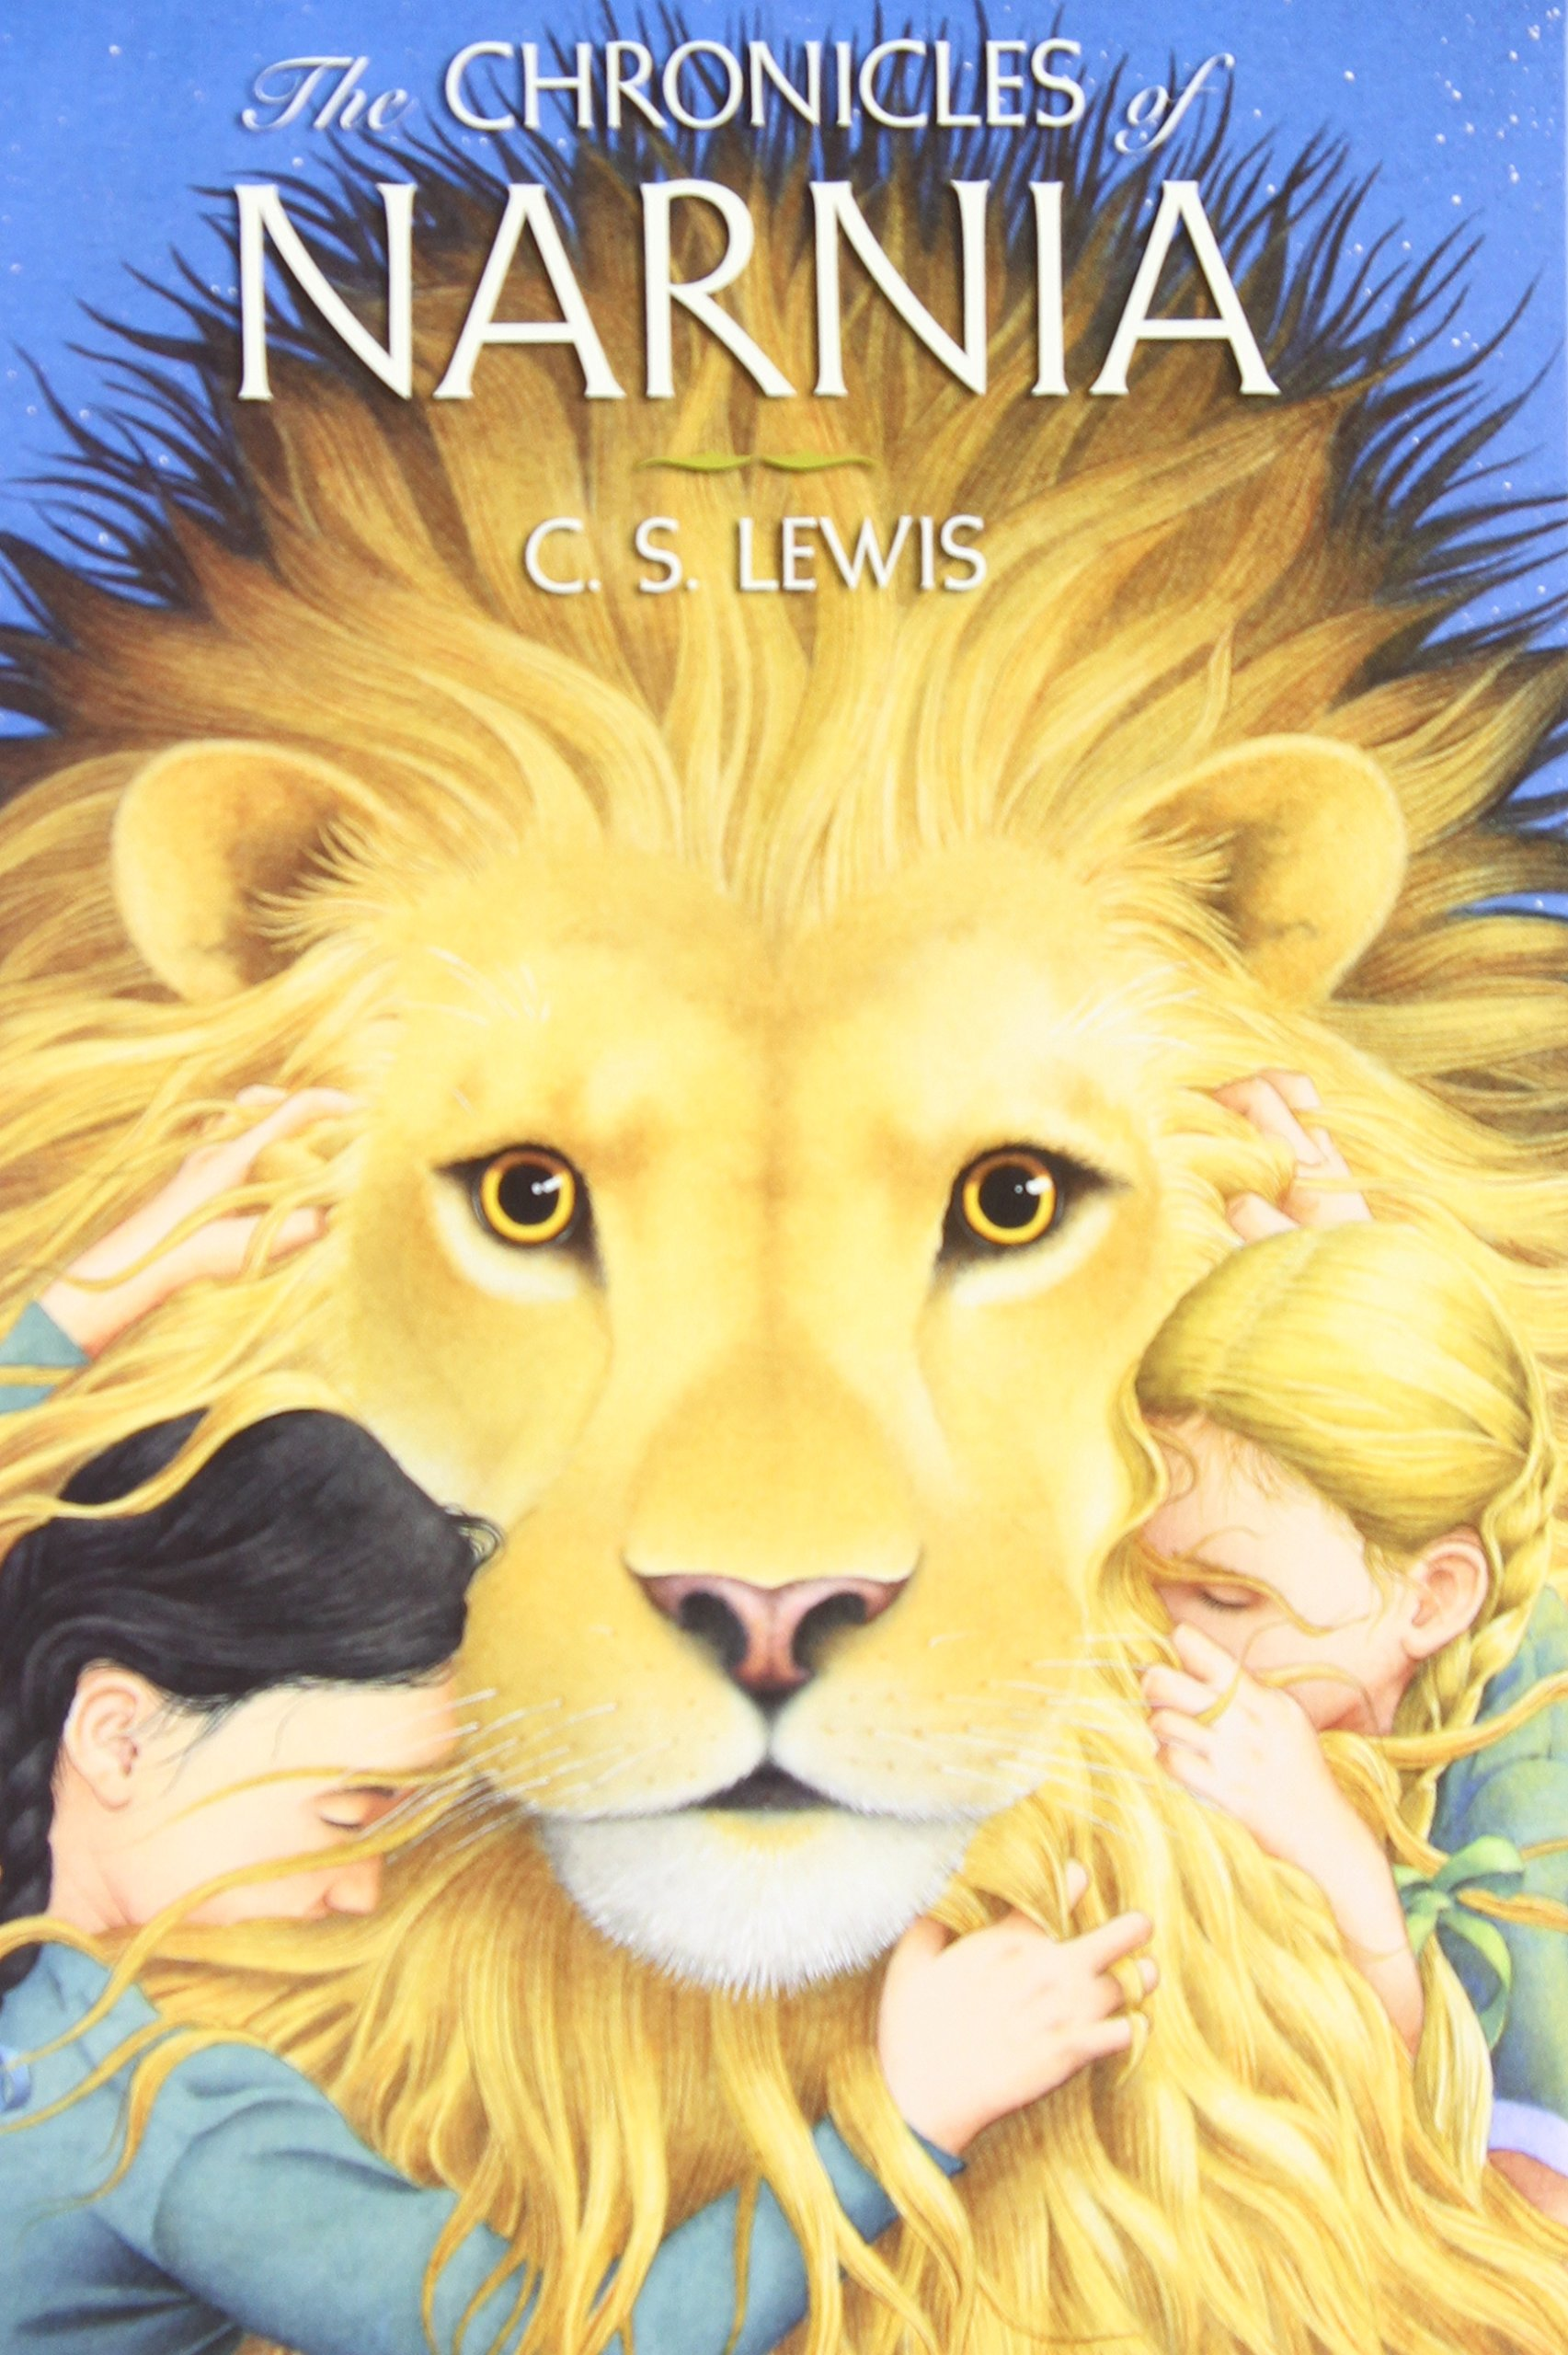 The silver chair illustrations - The Chronicles Of Narnia Box Set 7 Books In 1 Box Set C S Lewis Pauline Baynes 9780064405379 Books Amazon Ca